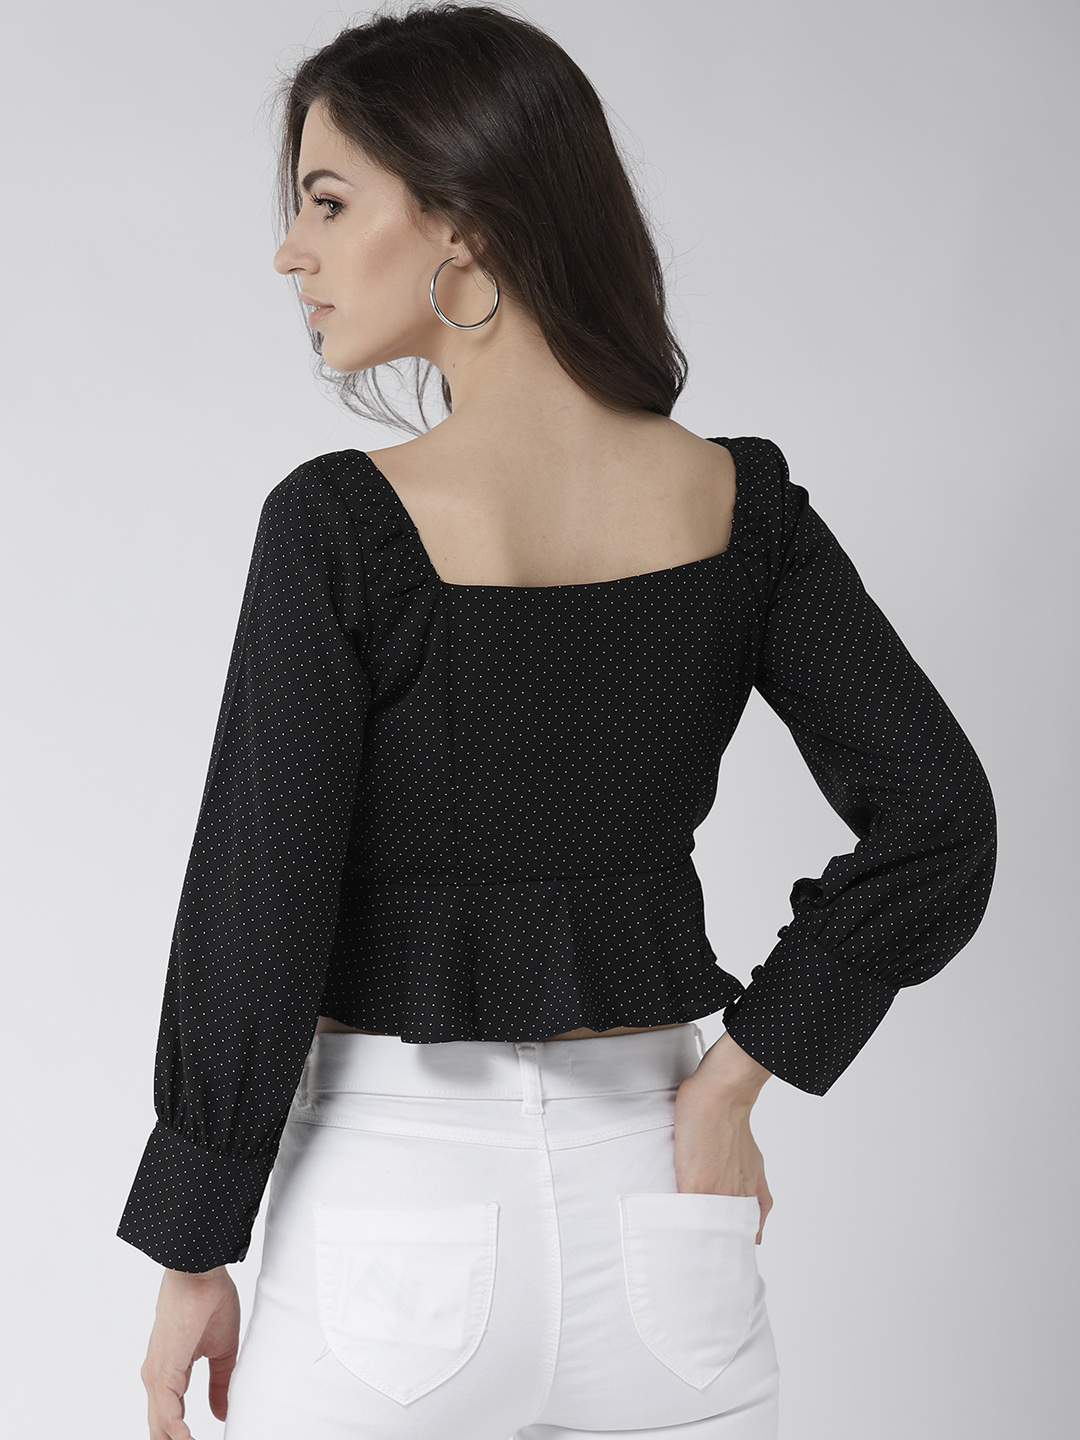 Tops-Caught In Style Peplum Top3